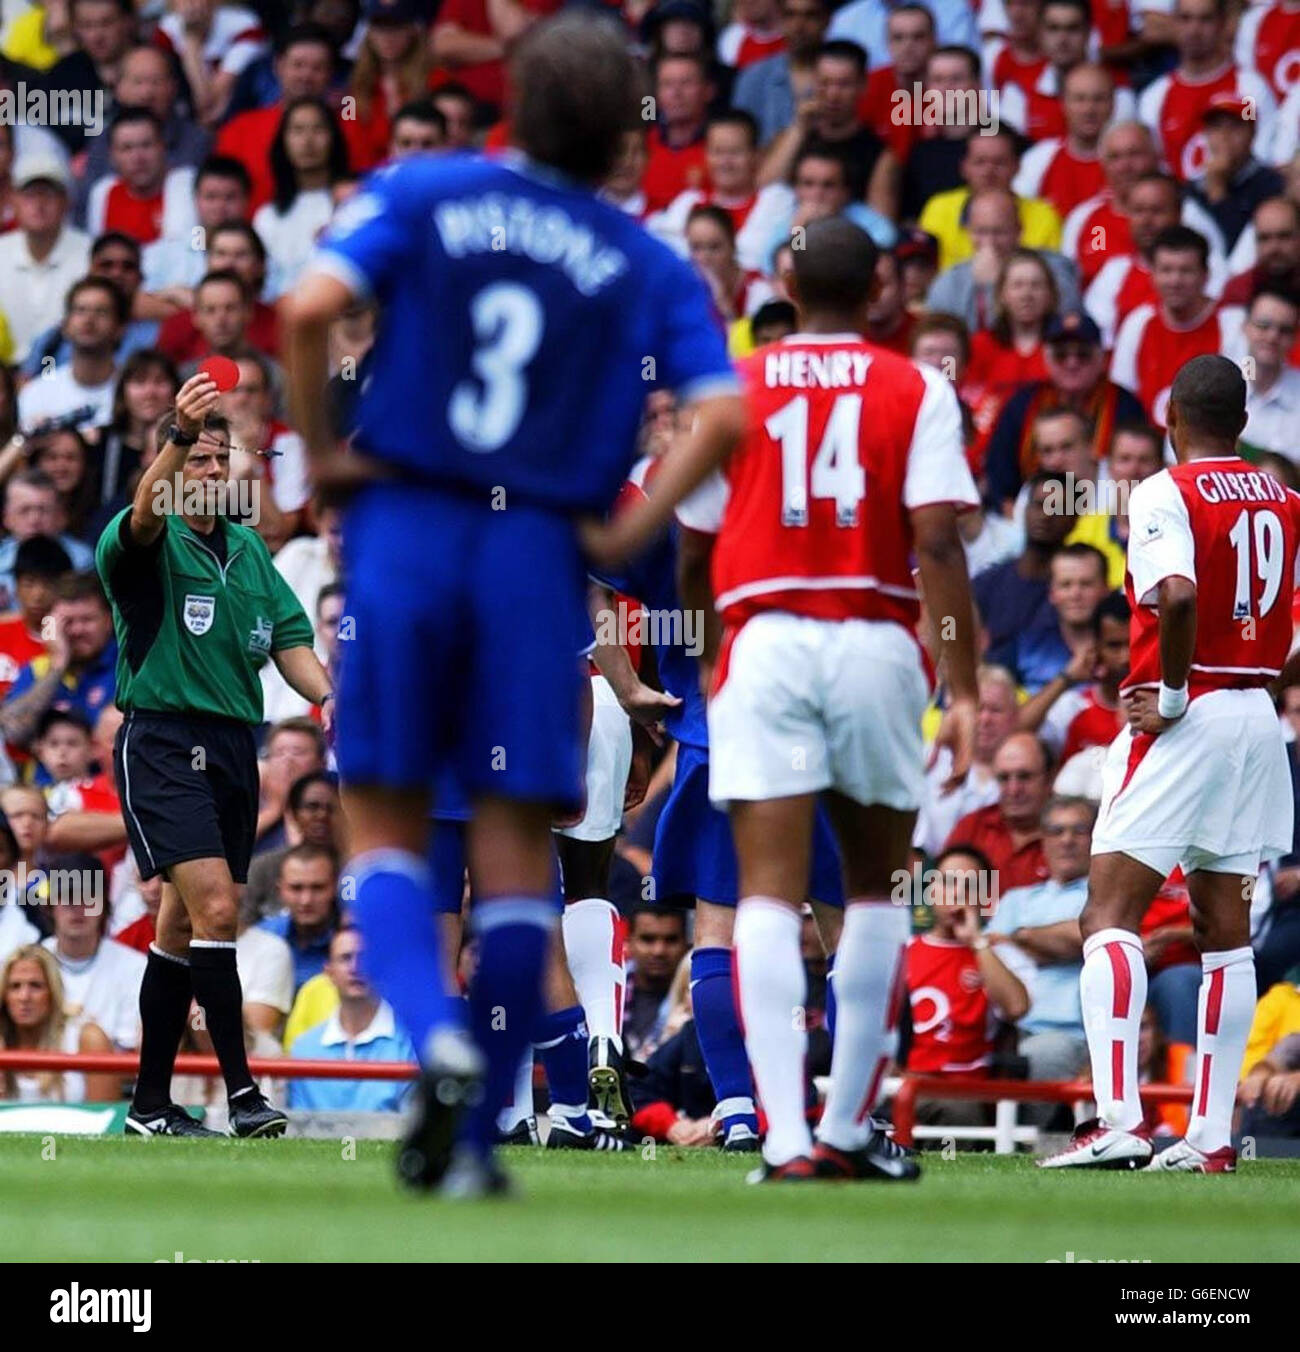 Sol Campbell is sent off - Stock Image